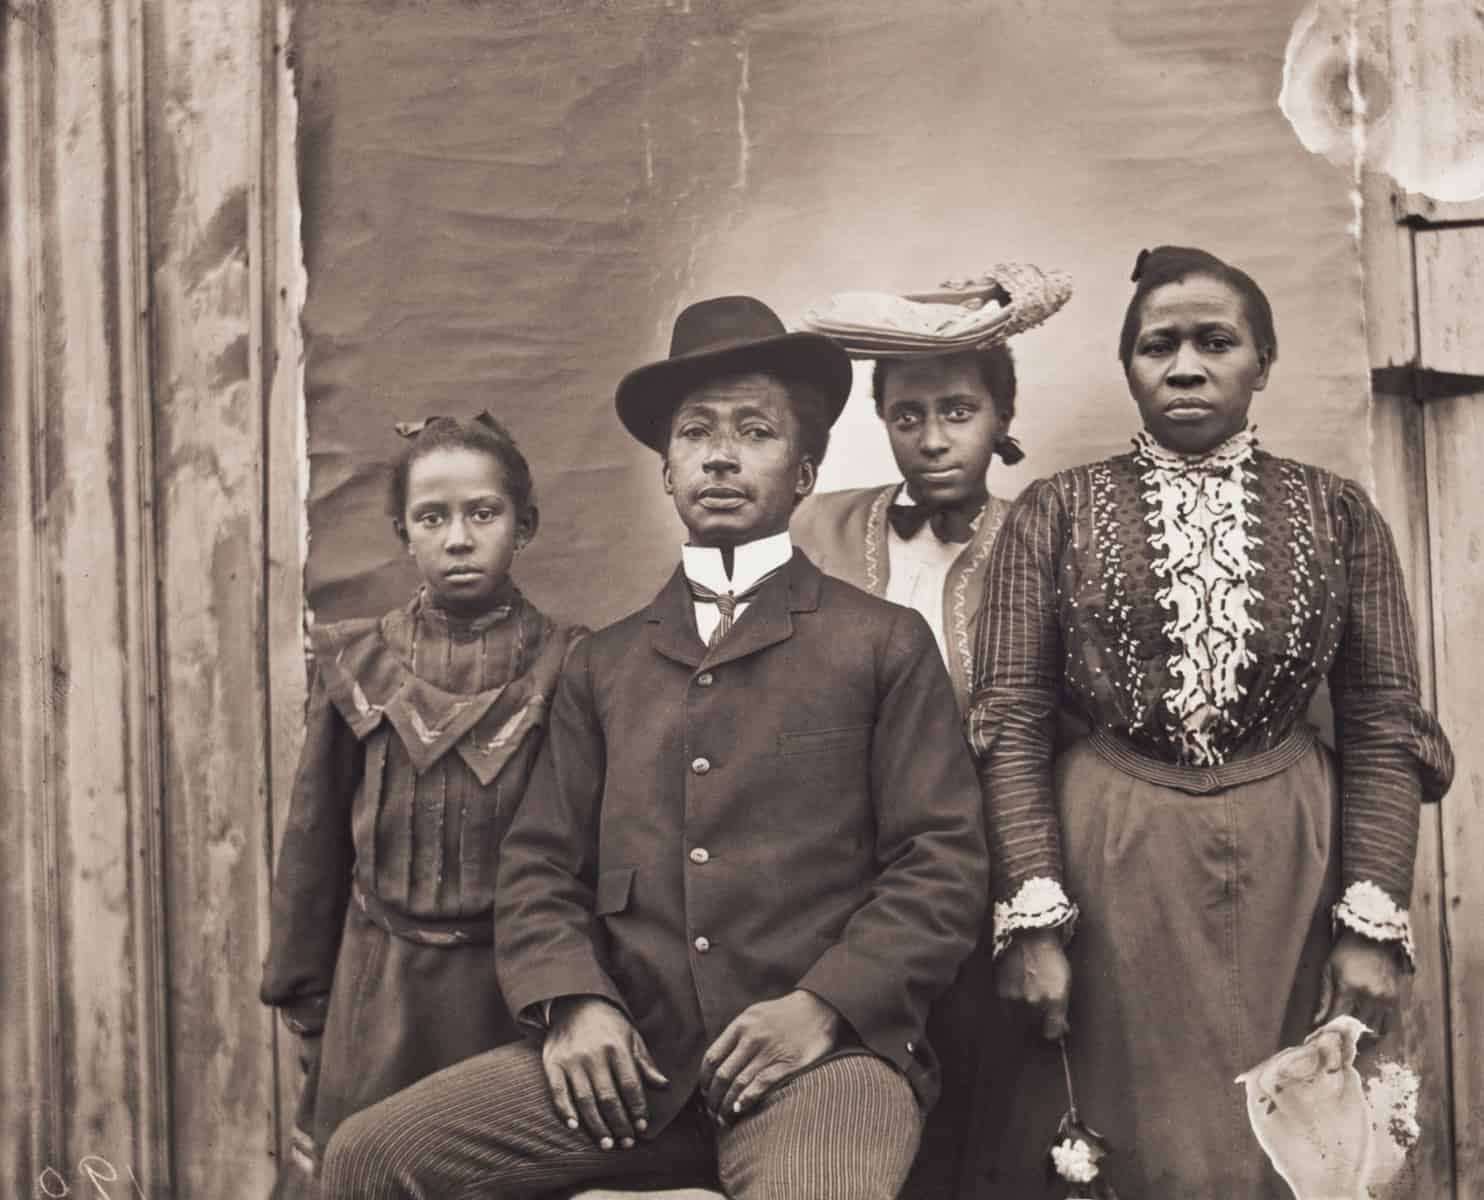 William Bullard: A Look at Worcester's Community of Color